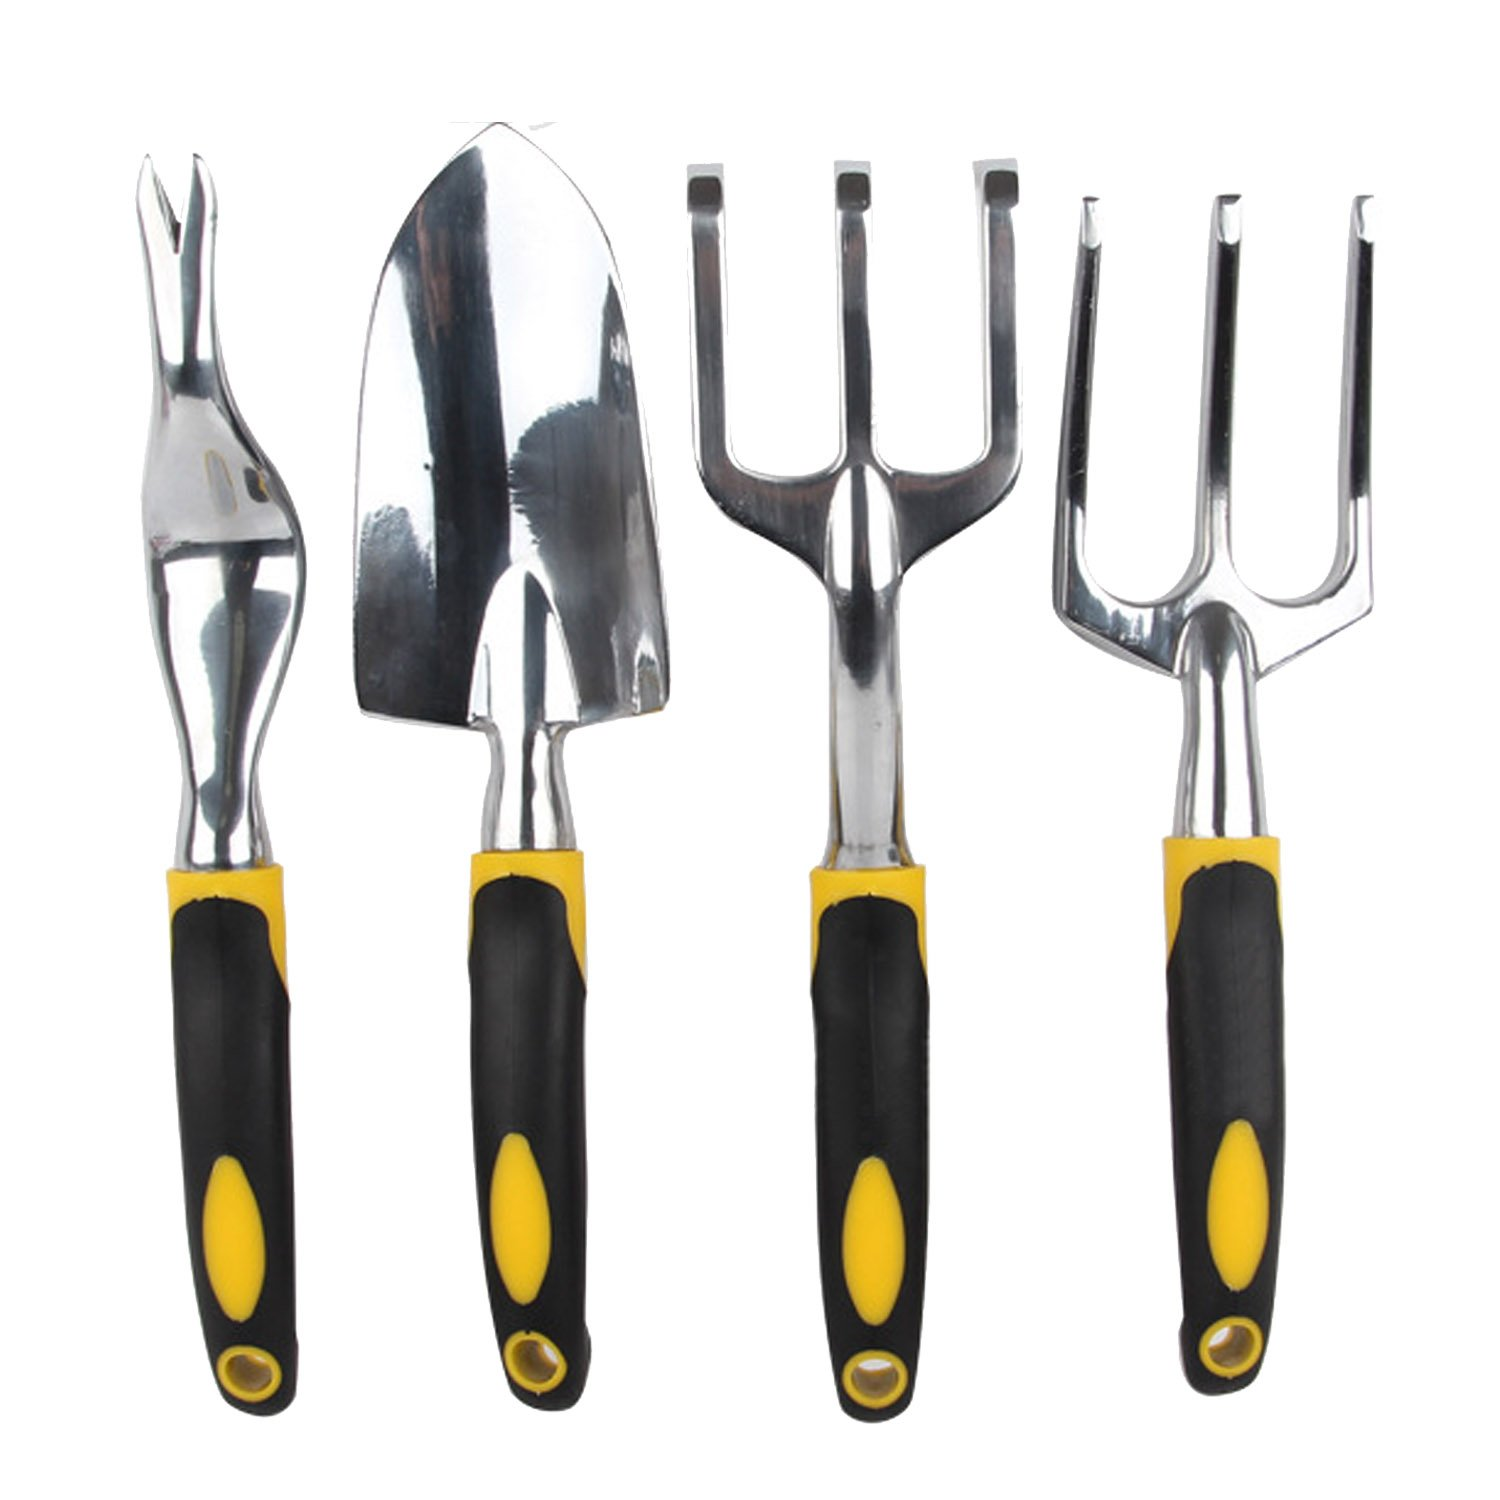 Set 3 PCS Garden Hand Tools Shovels Forks Harrow for Cultivating Digging Weeding Soil Loosening Aerating Transplanting Gosear